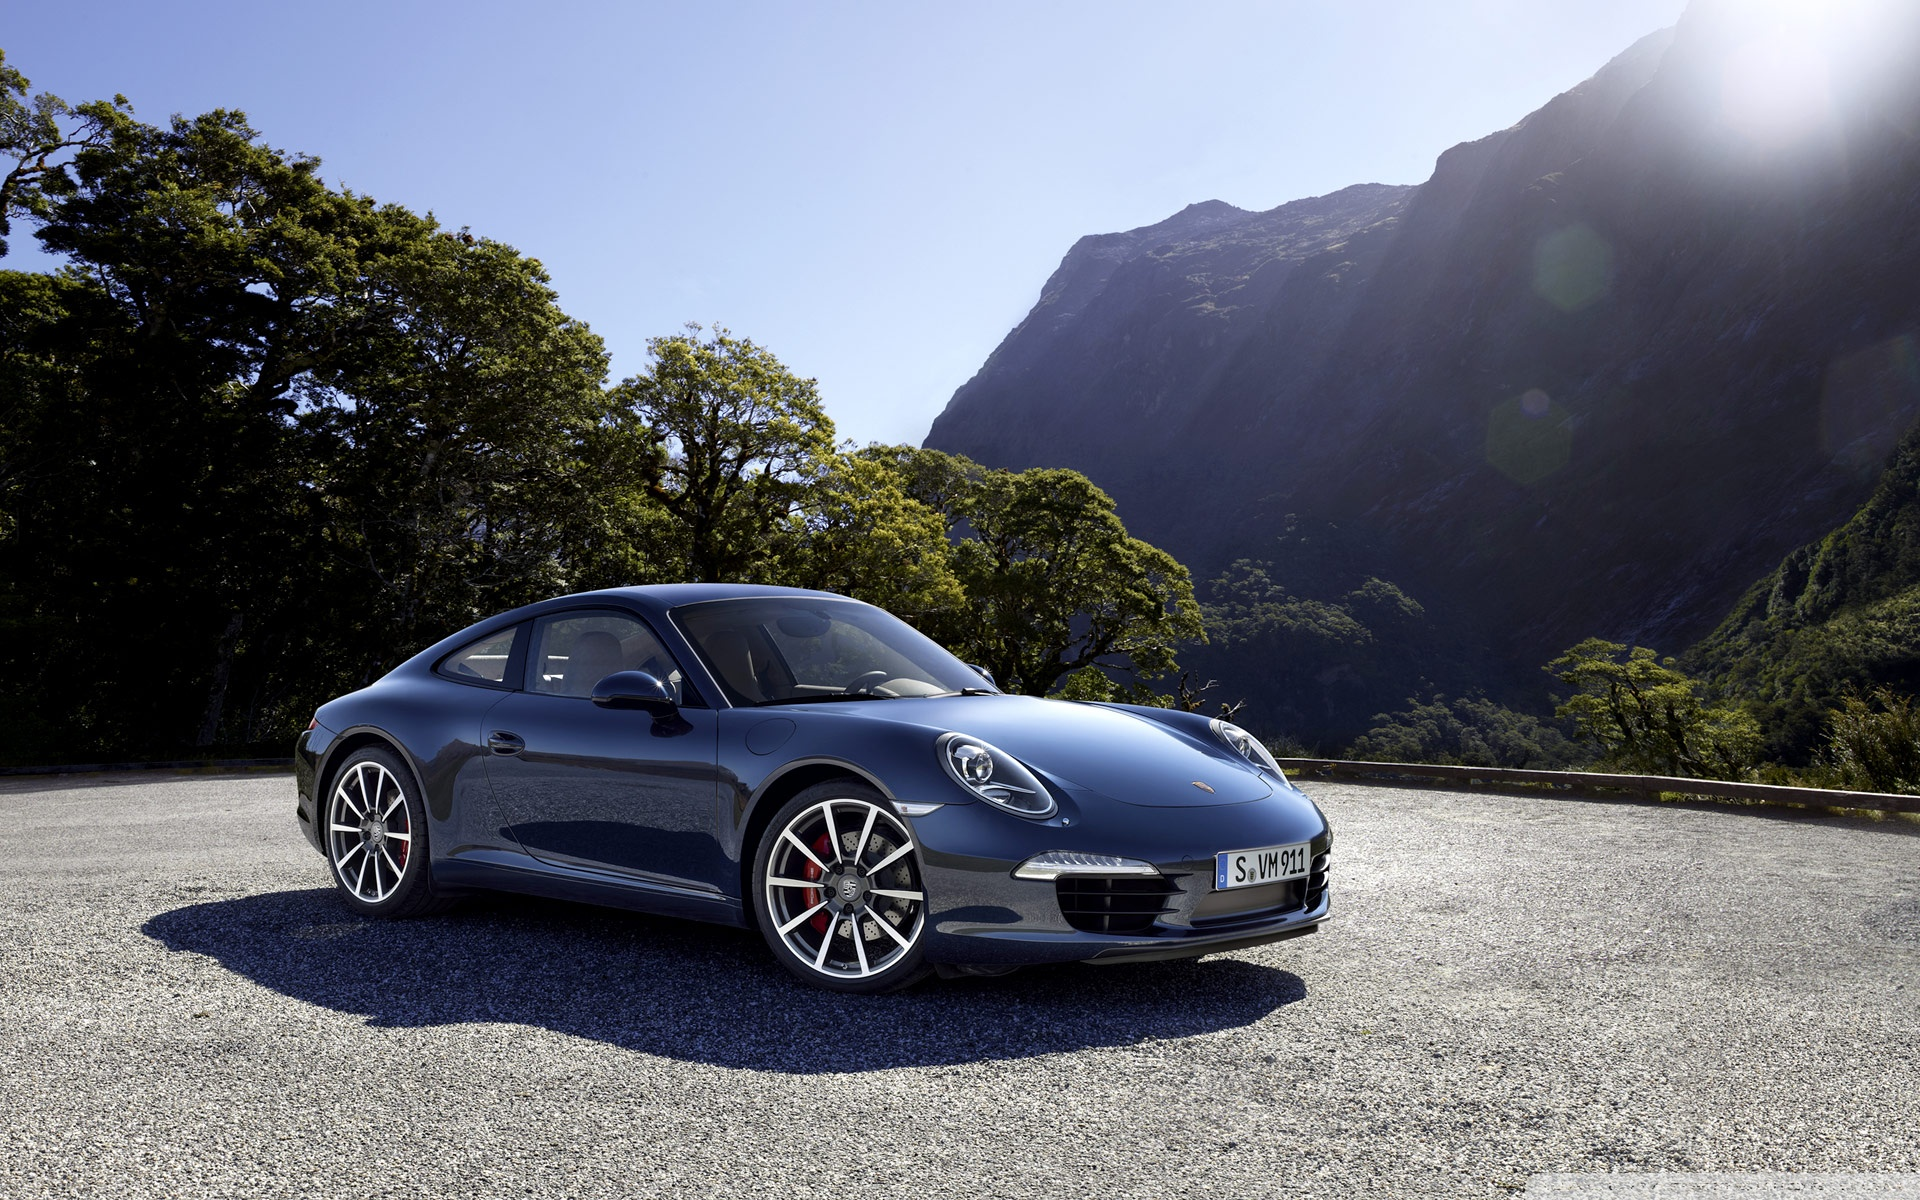 Porsche 911 Carrera Wallpapers and Background Images   stmednet 1920x1200